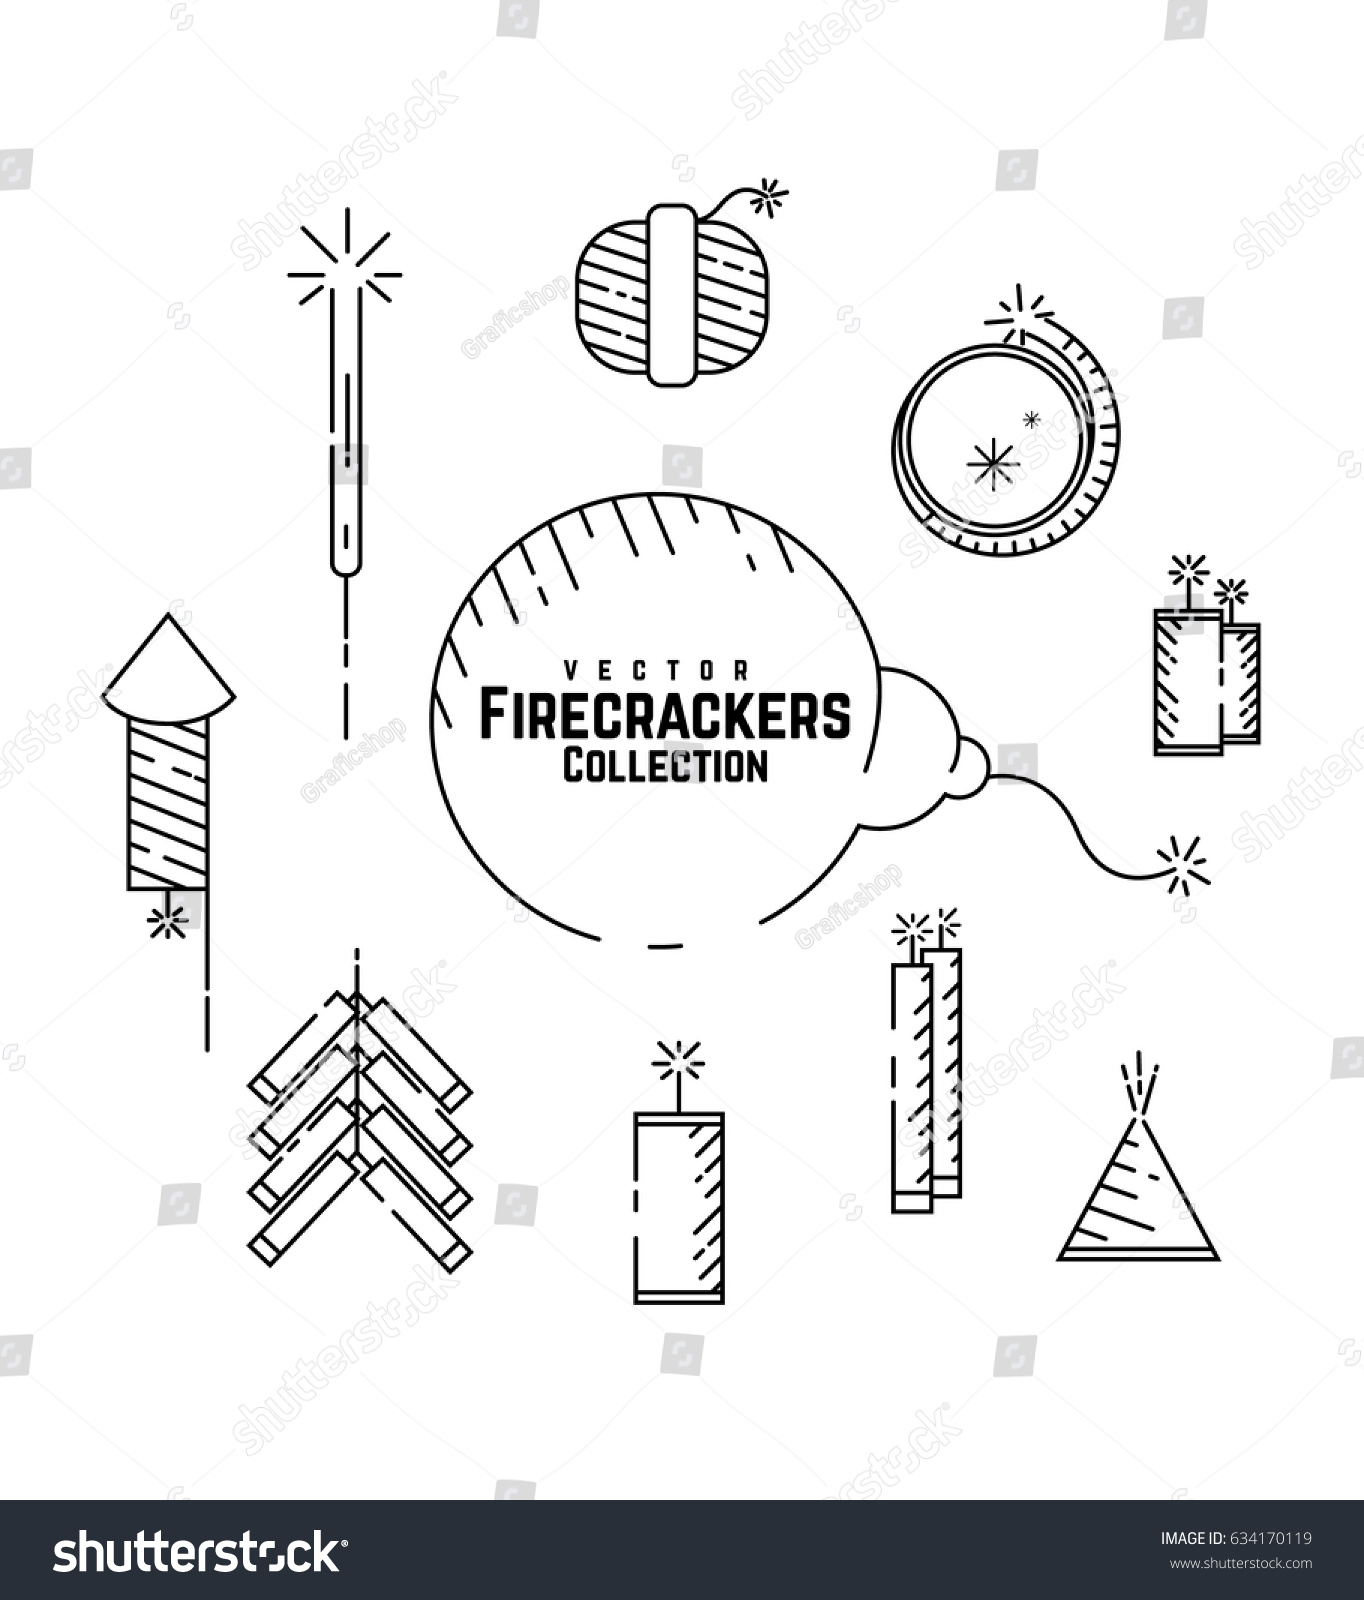 vector firecrackers collection set fireworks icon diwali crackers